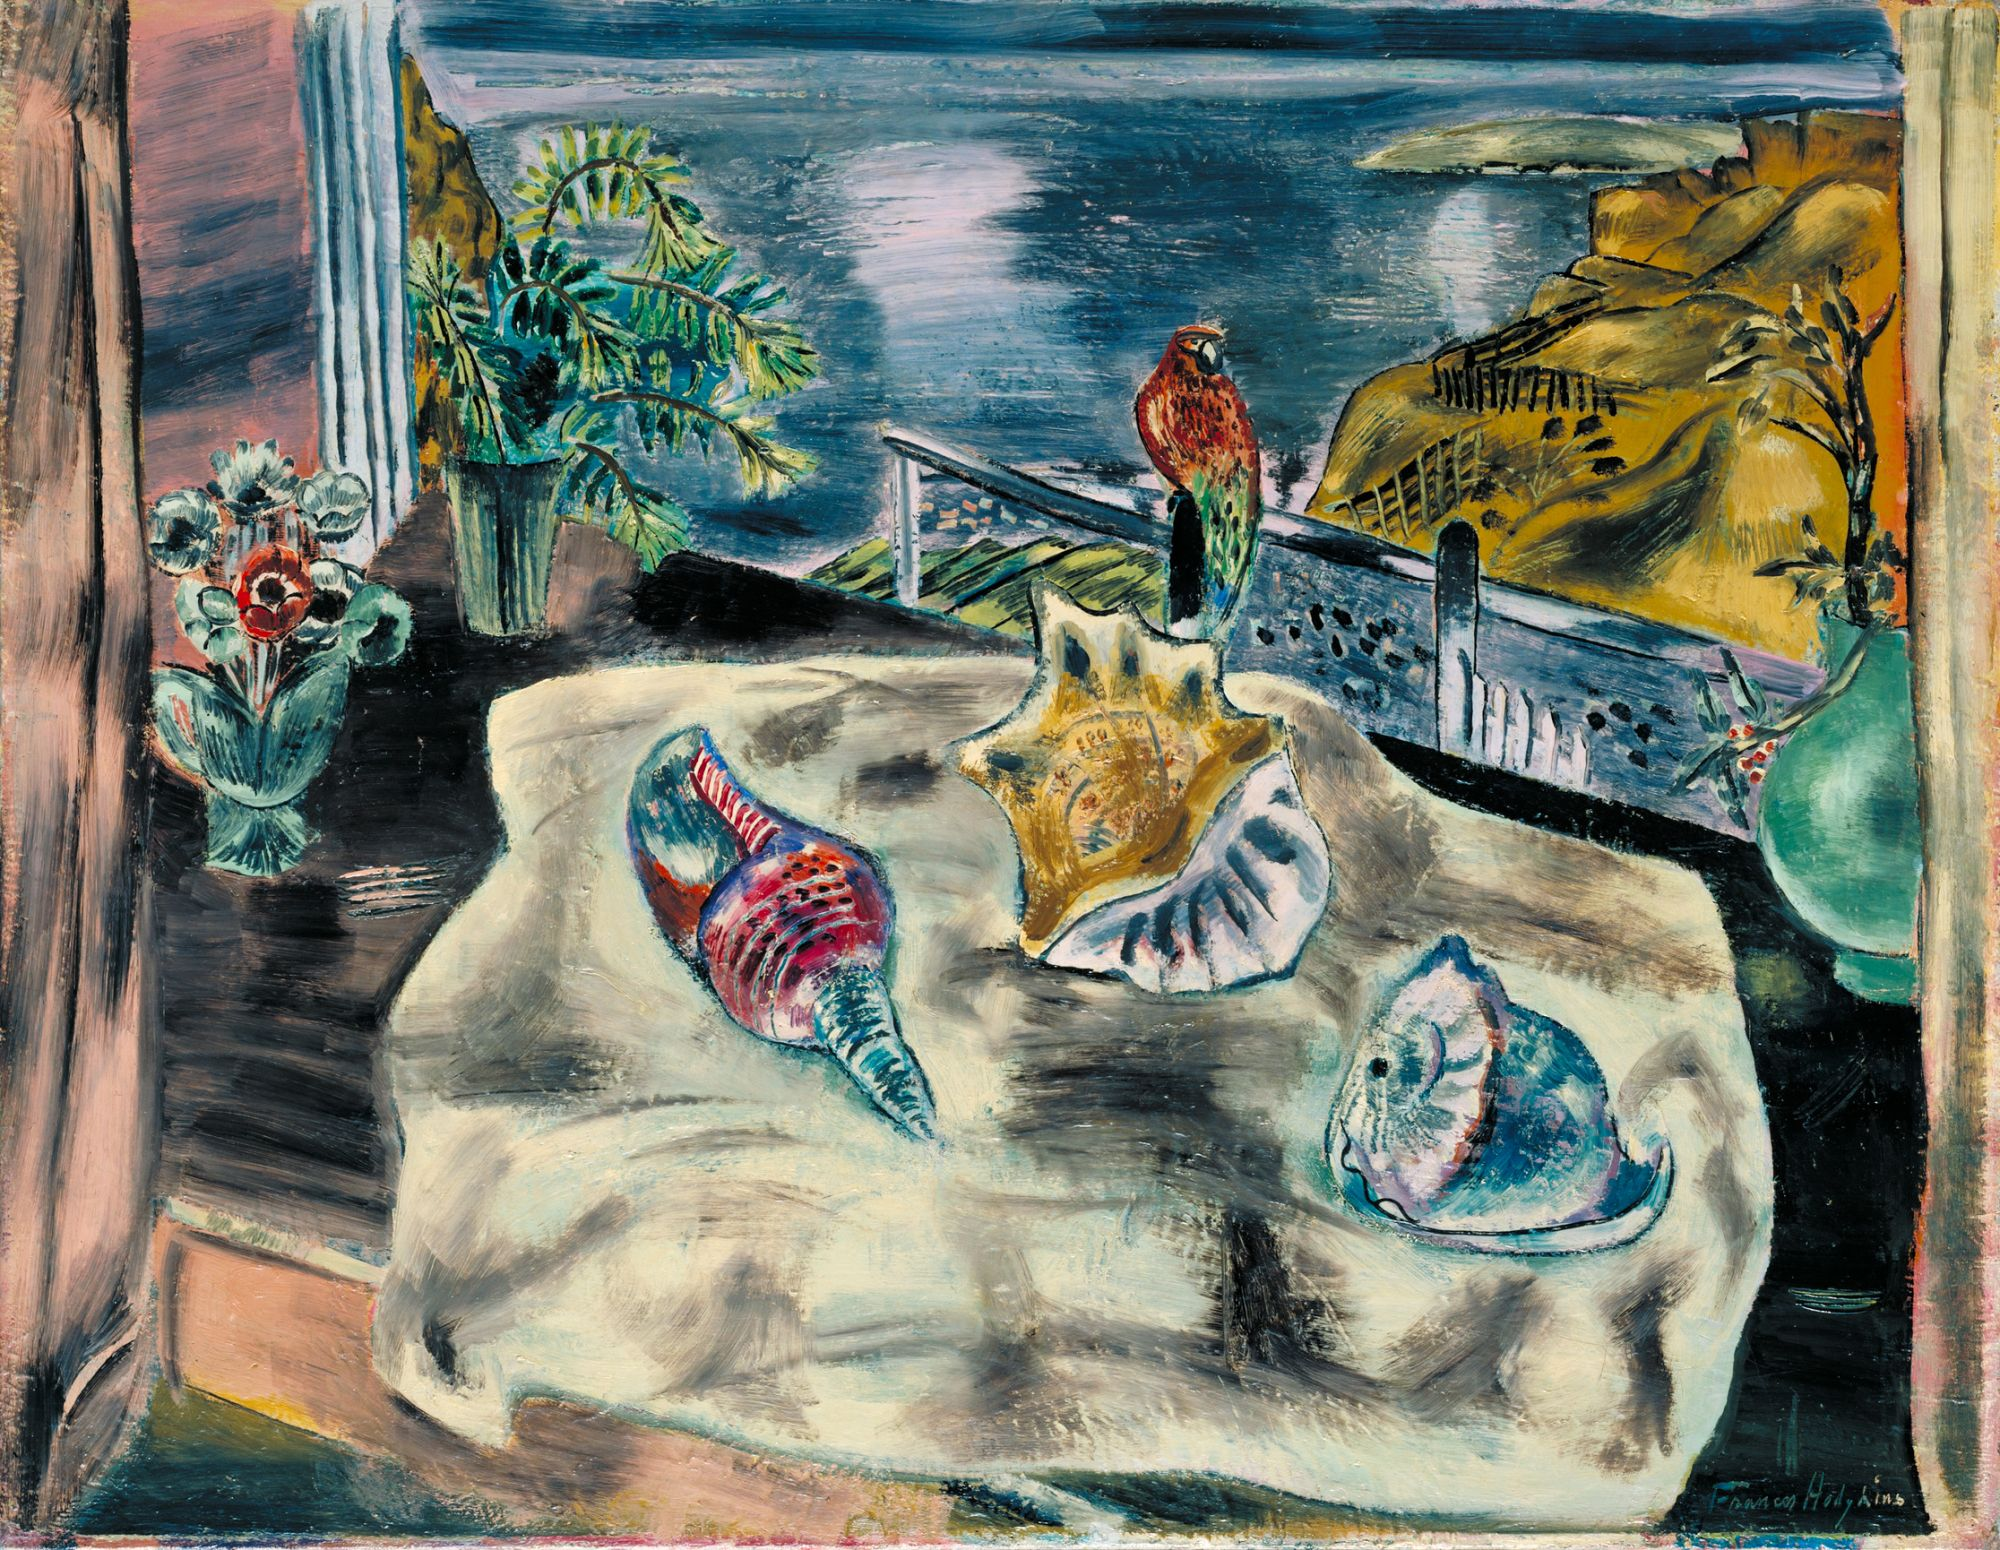 'Wings Over Water', 1930, Frances Hodgkins. Image: courtesy of Tate